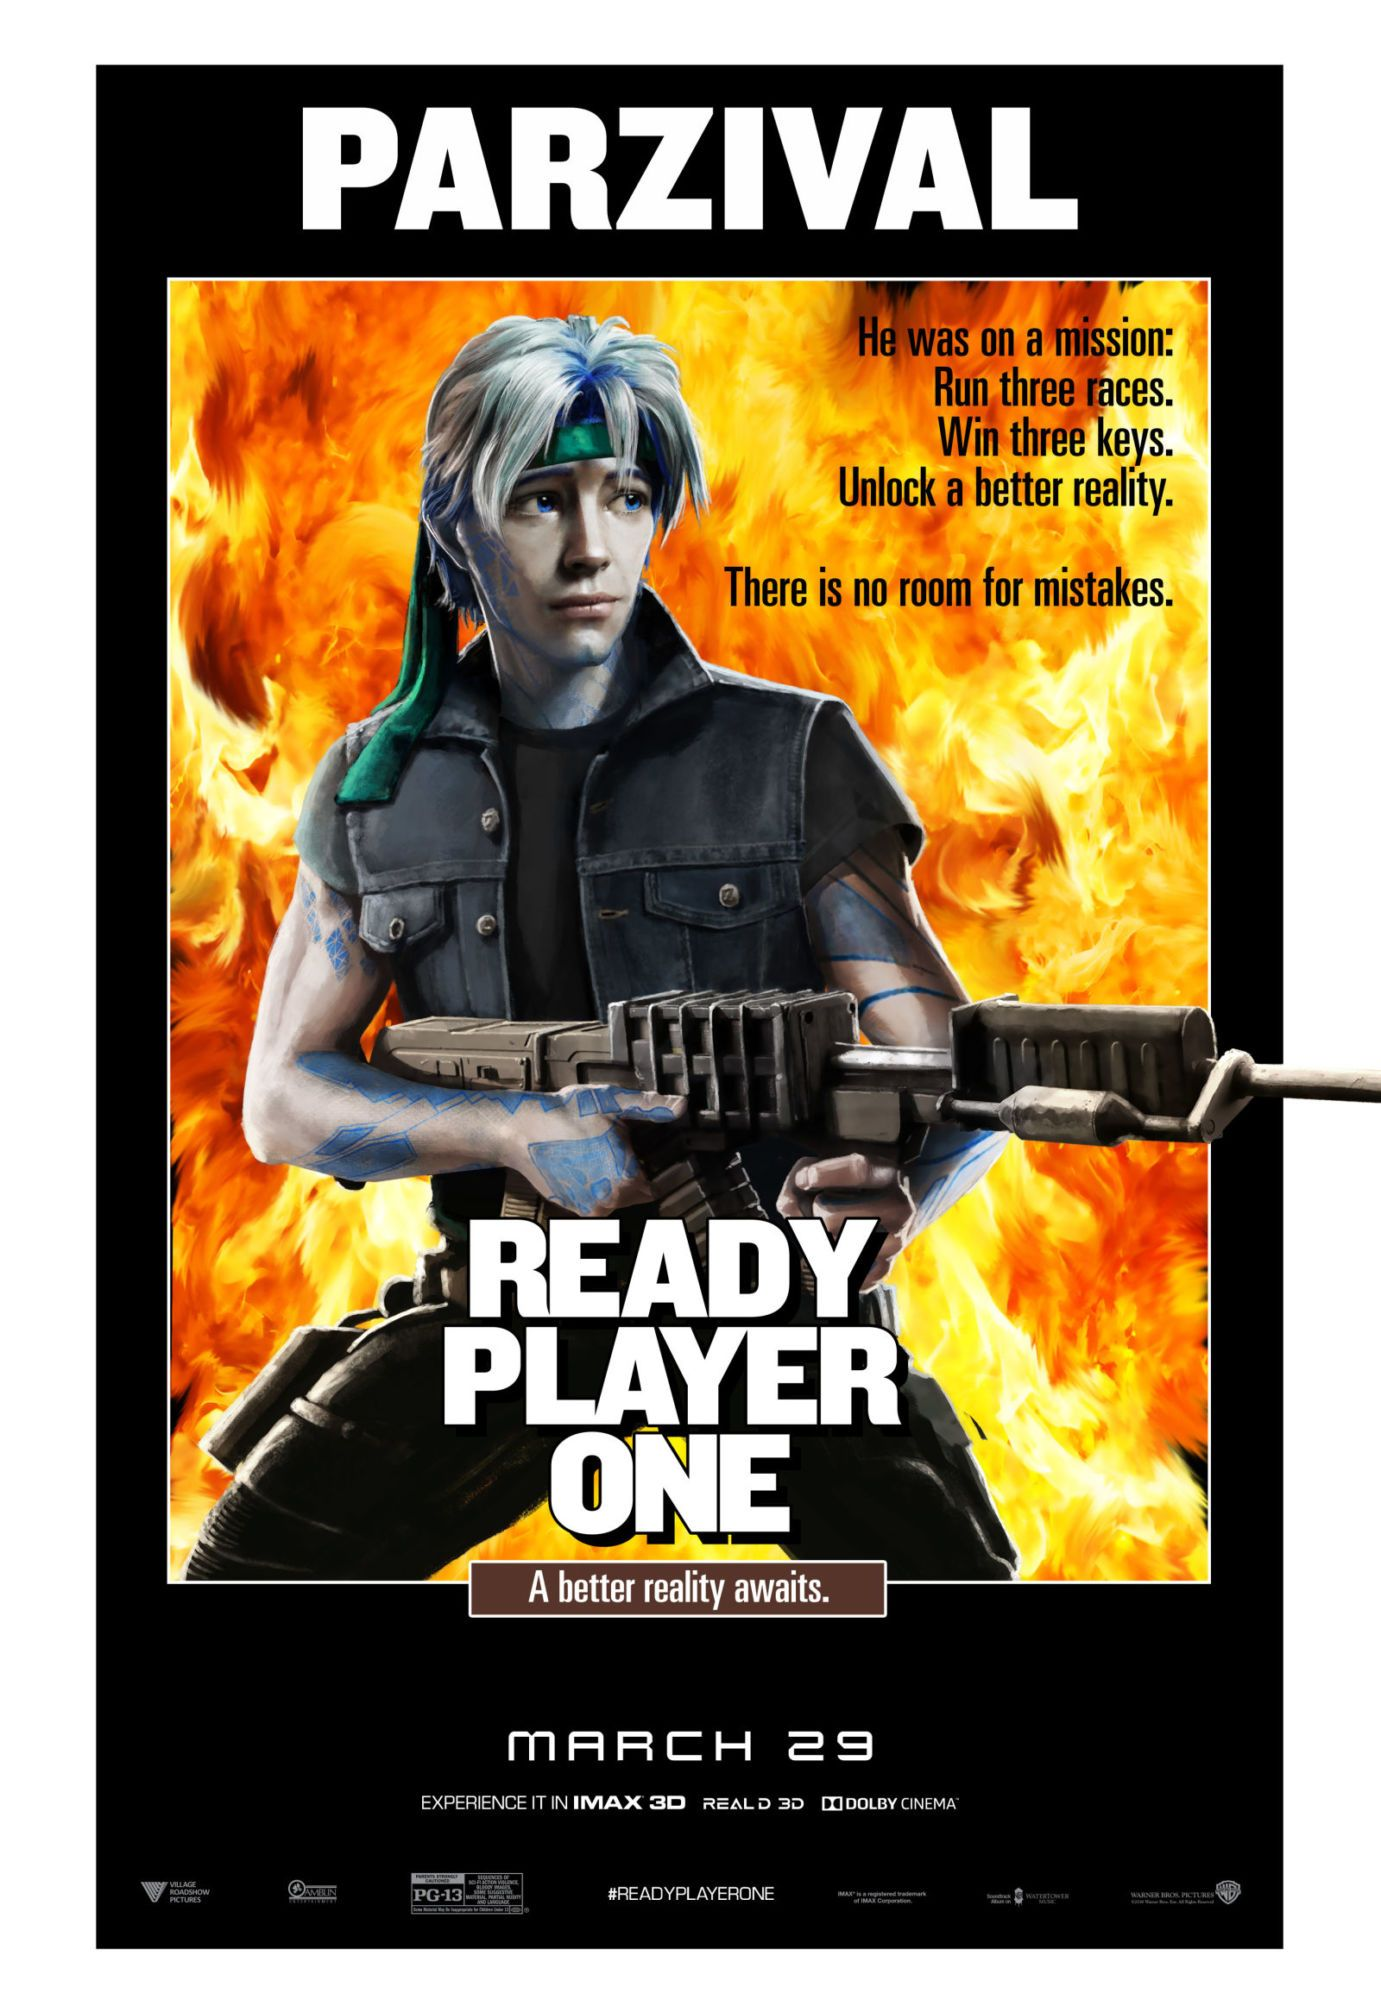 Check out this set of 12 classic movie posters recreated for Ready Player  One featuring the High Five avatars Parzival, Art3mis, Aech, Daito, and  Shoto.